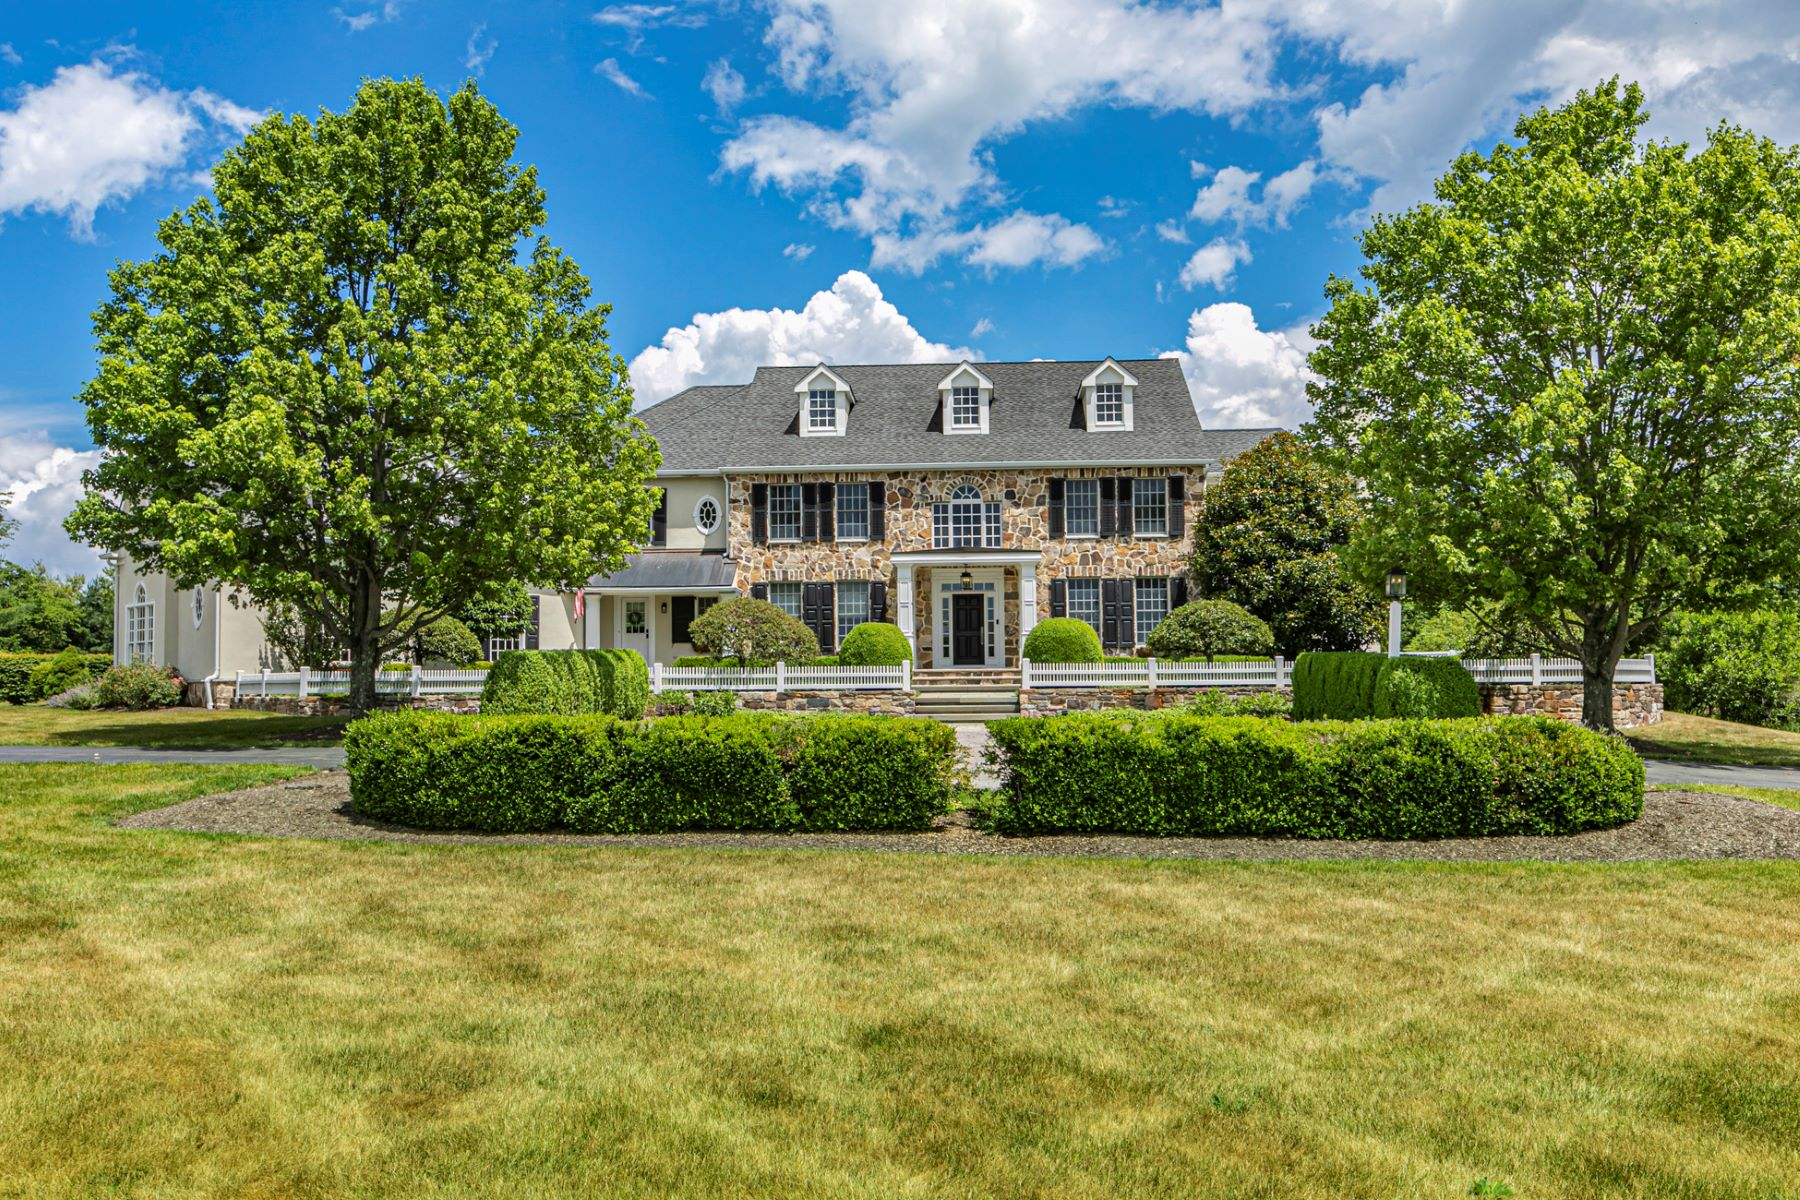 Single Family Homes for Sale at As Pretty & Restful As A Martha's Vineyard Estate 4 Benson Lane, Skillman, New Jersey 08558 United States